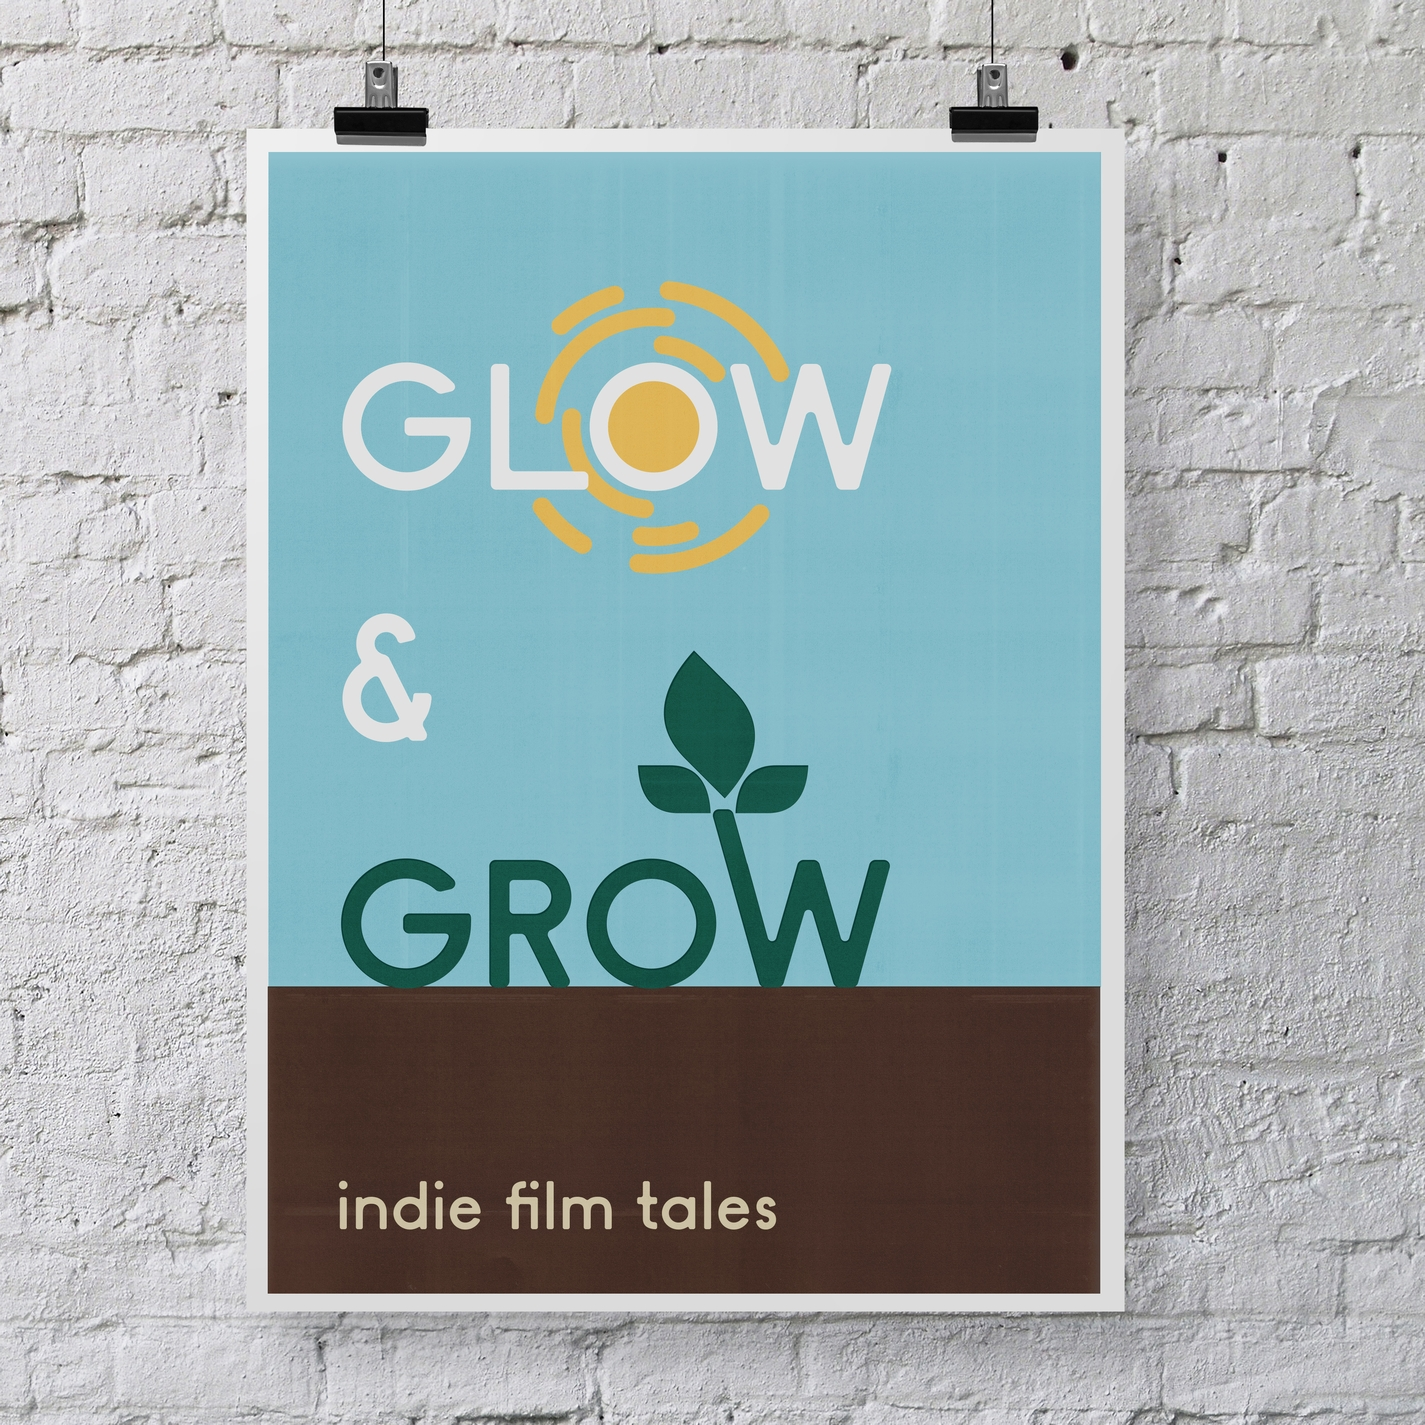 Glow & Grow - Indie Film Tales